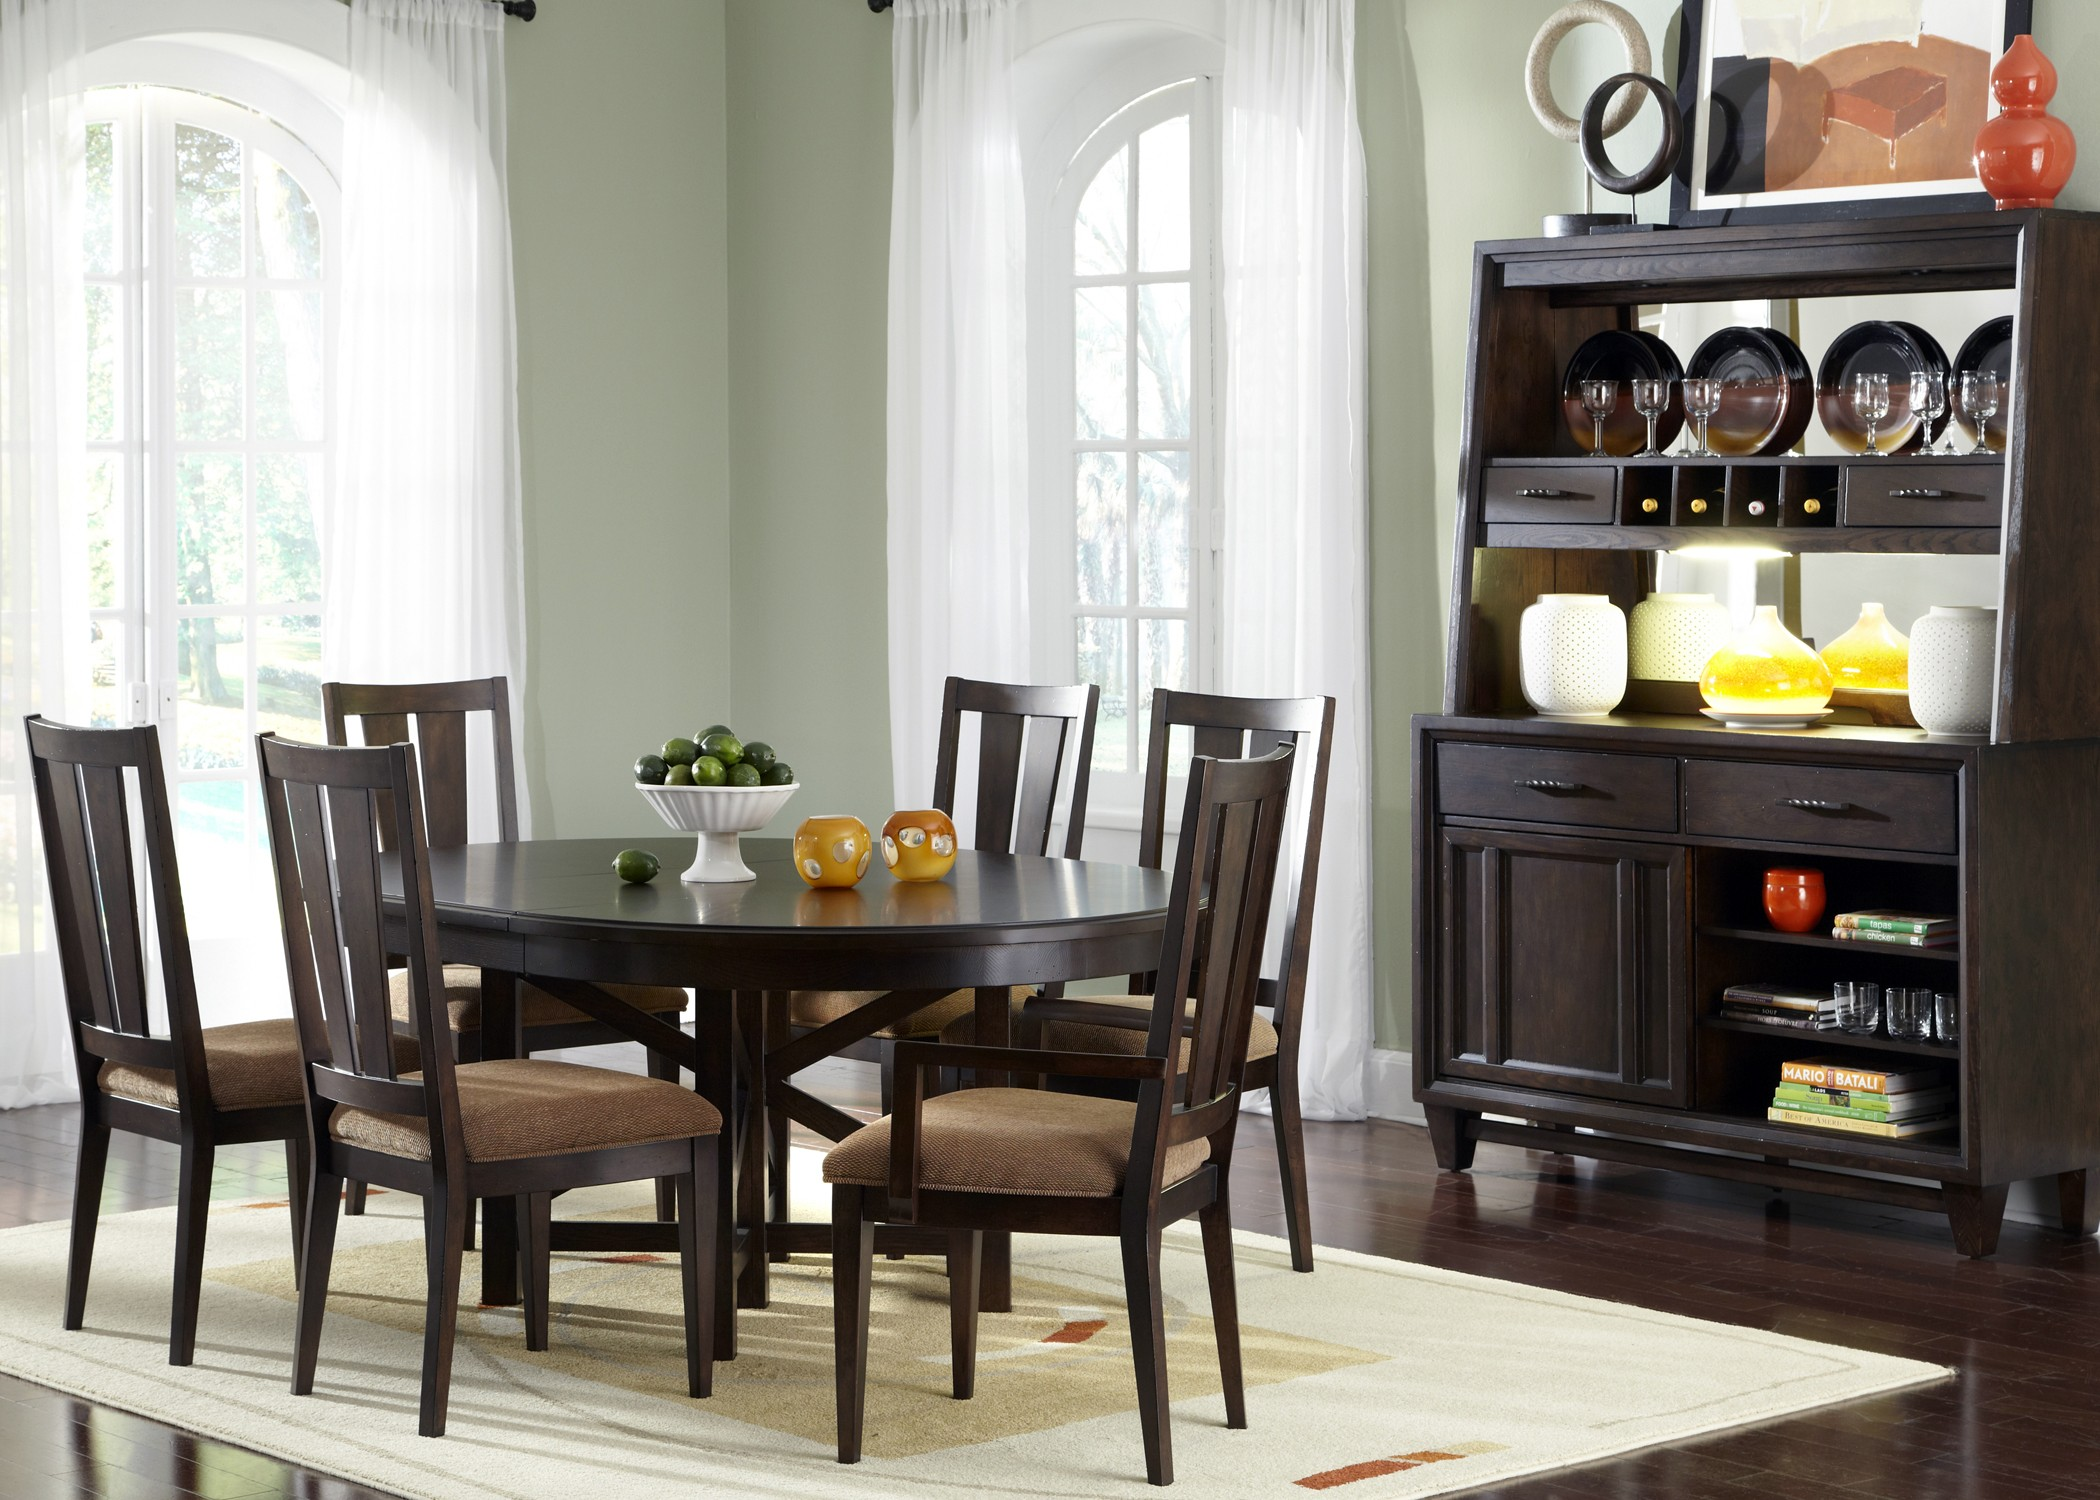 Visions Oval Pedestal Dining Room Set From Liberty